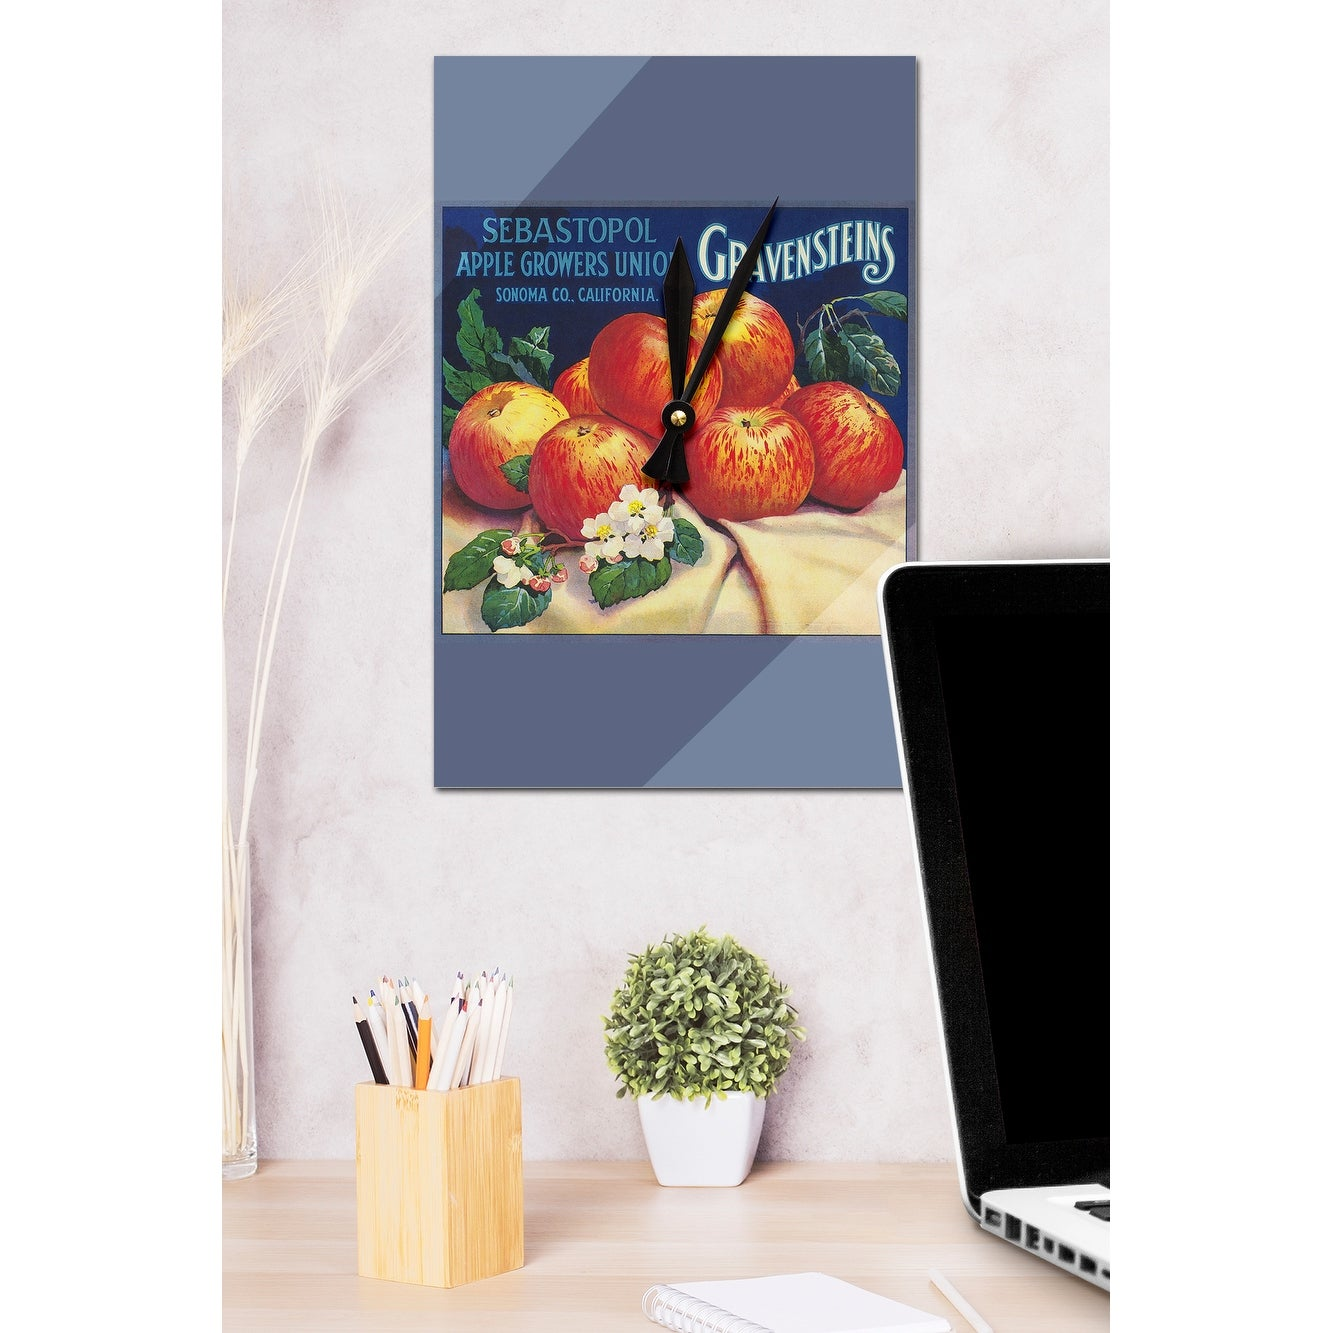 Sebastopol Gravensteins Apple   Vintage Label (Acrylic Wall Clock)    Acrylic Wall Clock   Free Shipping On Orders Over $45   Overstock.com    20260702